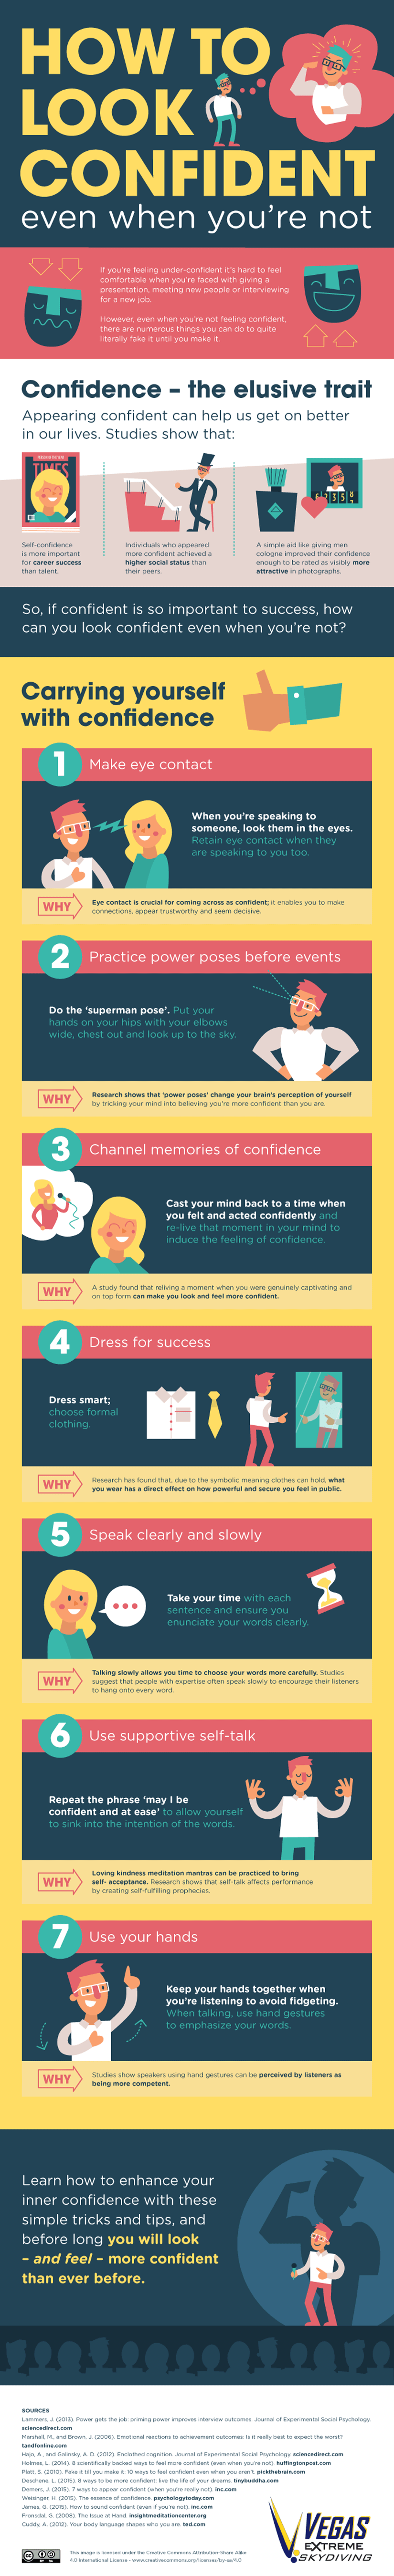 How to Look Confident Even When You're Not- Infographic